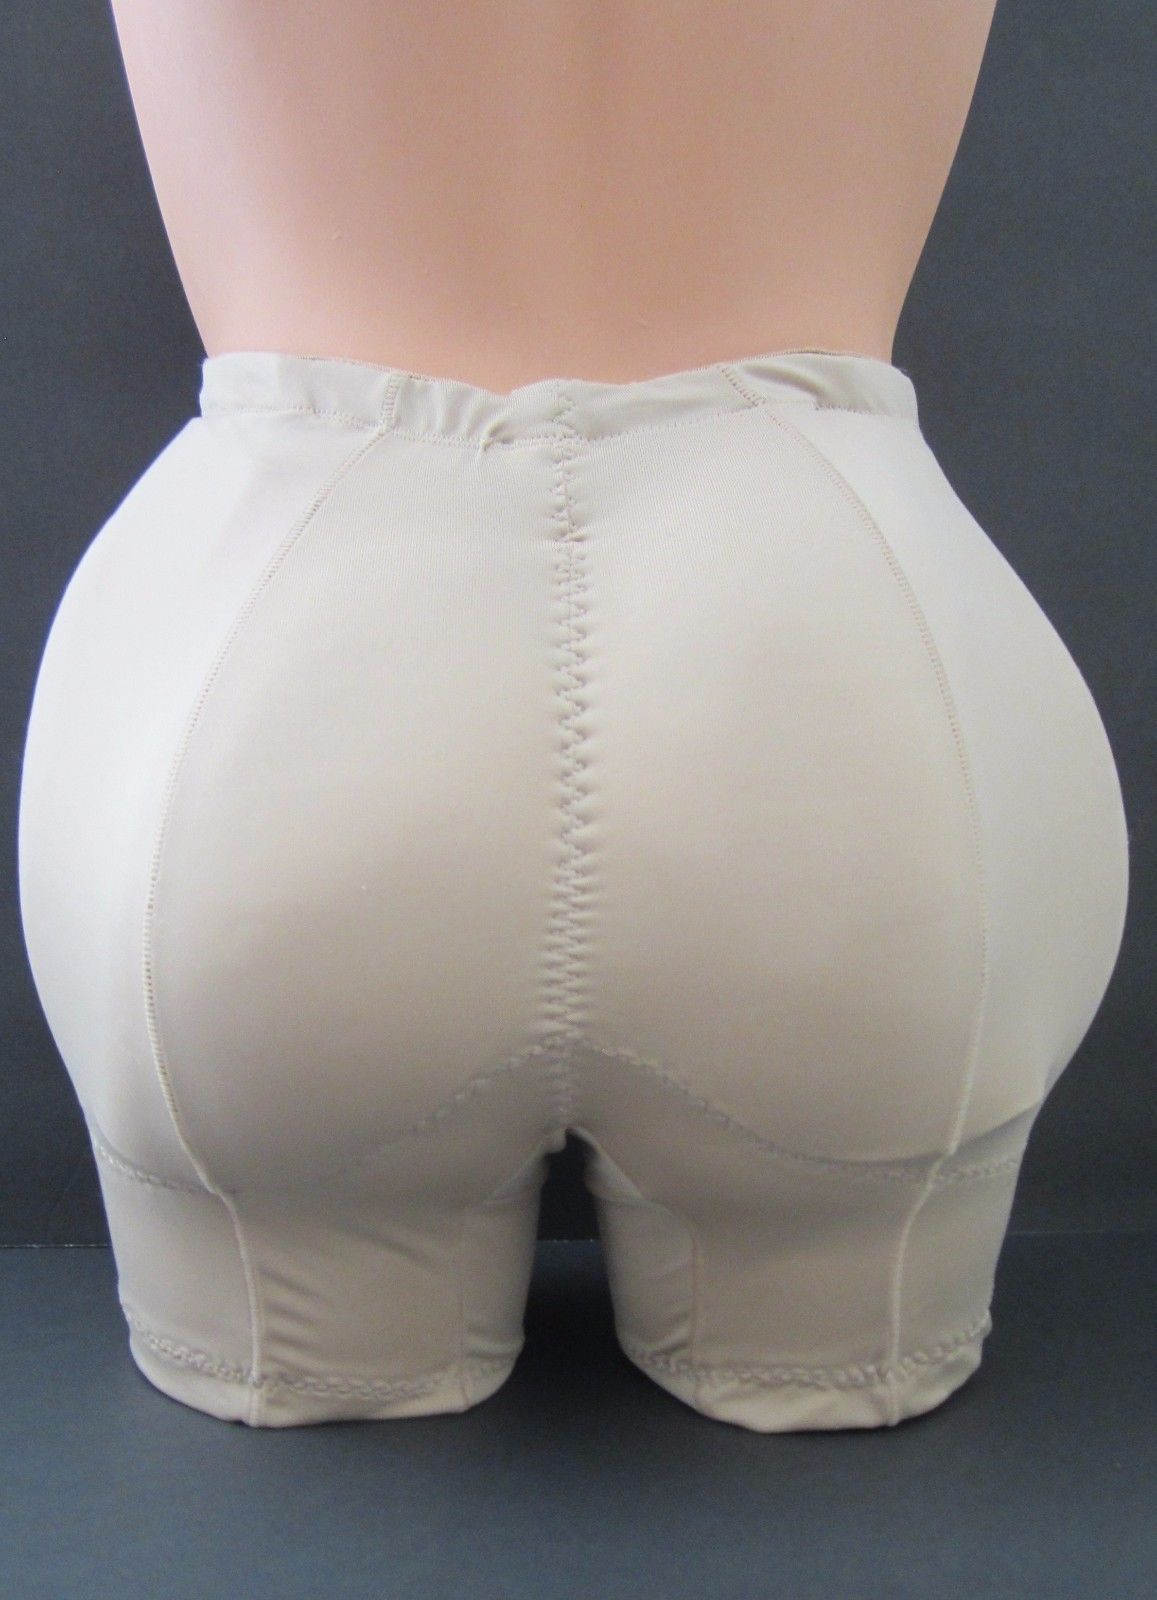 02a4ffca4d3f7 S l1600. S l1600. Previous. Butt and Hip Enhancer BOOTY PADDED Pads Panties  Undies Boyshorts Shapewear